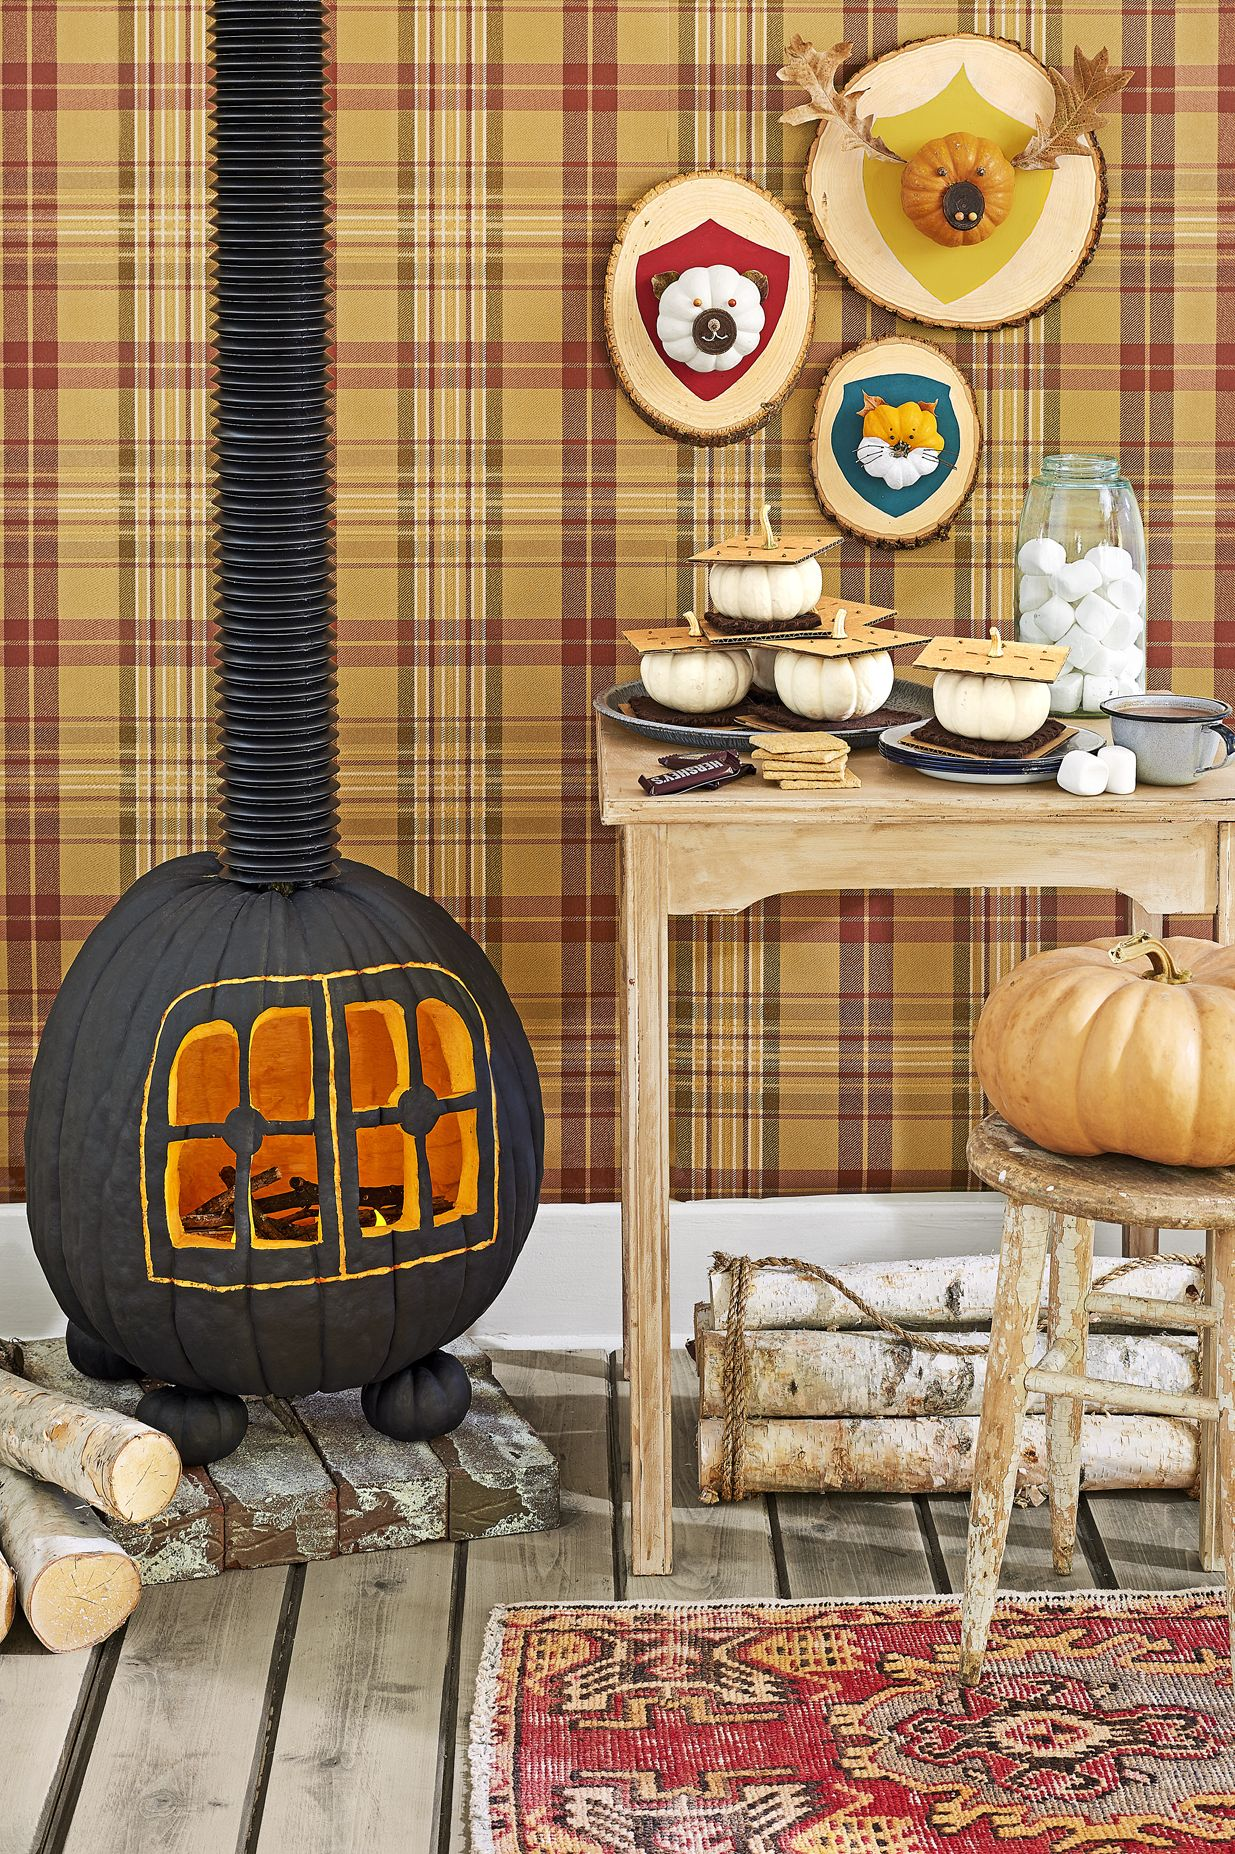 halloween party ideas spooky wood-burning stove jack-o-lantern